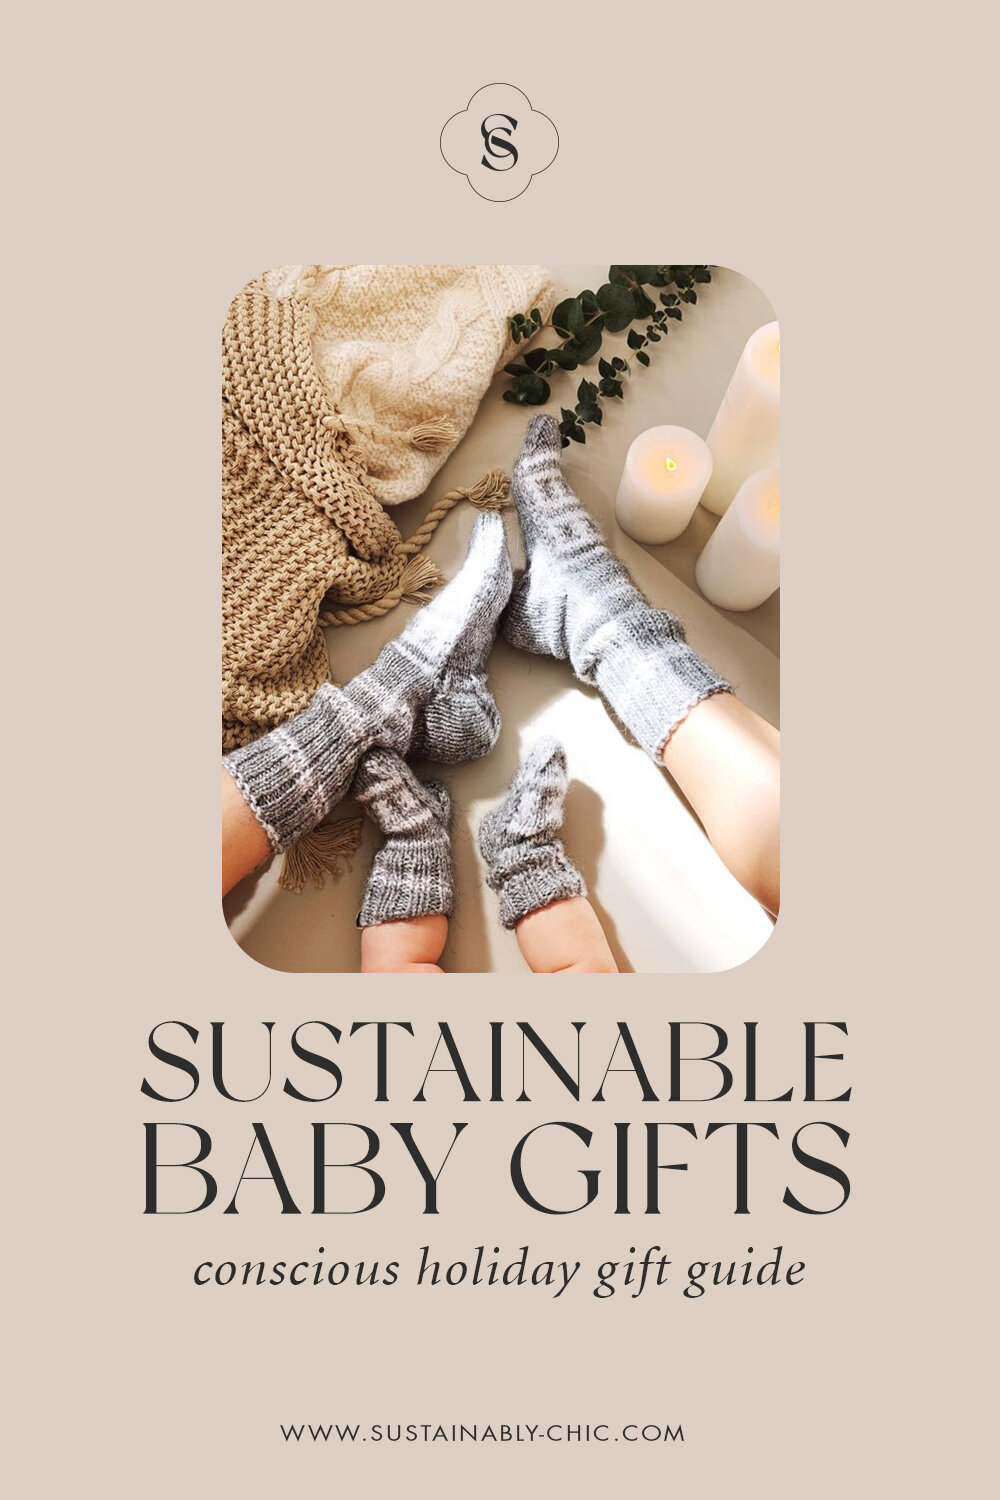 Sustainably Chic | Sustainable Fashion & Lifestyle Blog | The Best Sustainable Baby Gifts.jpg